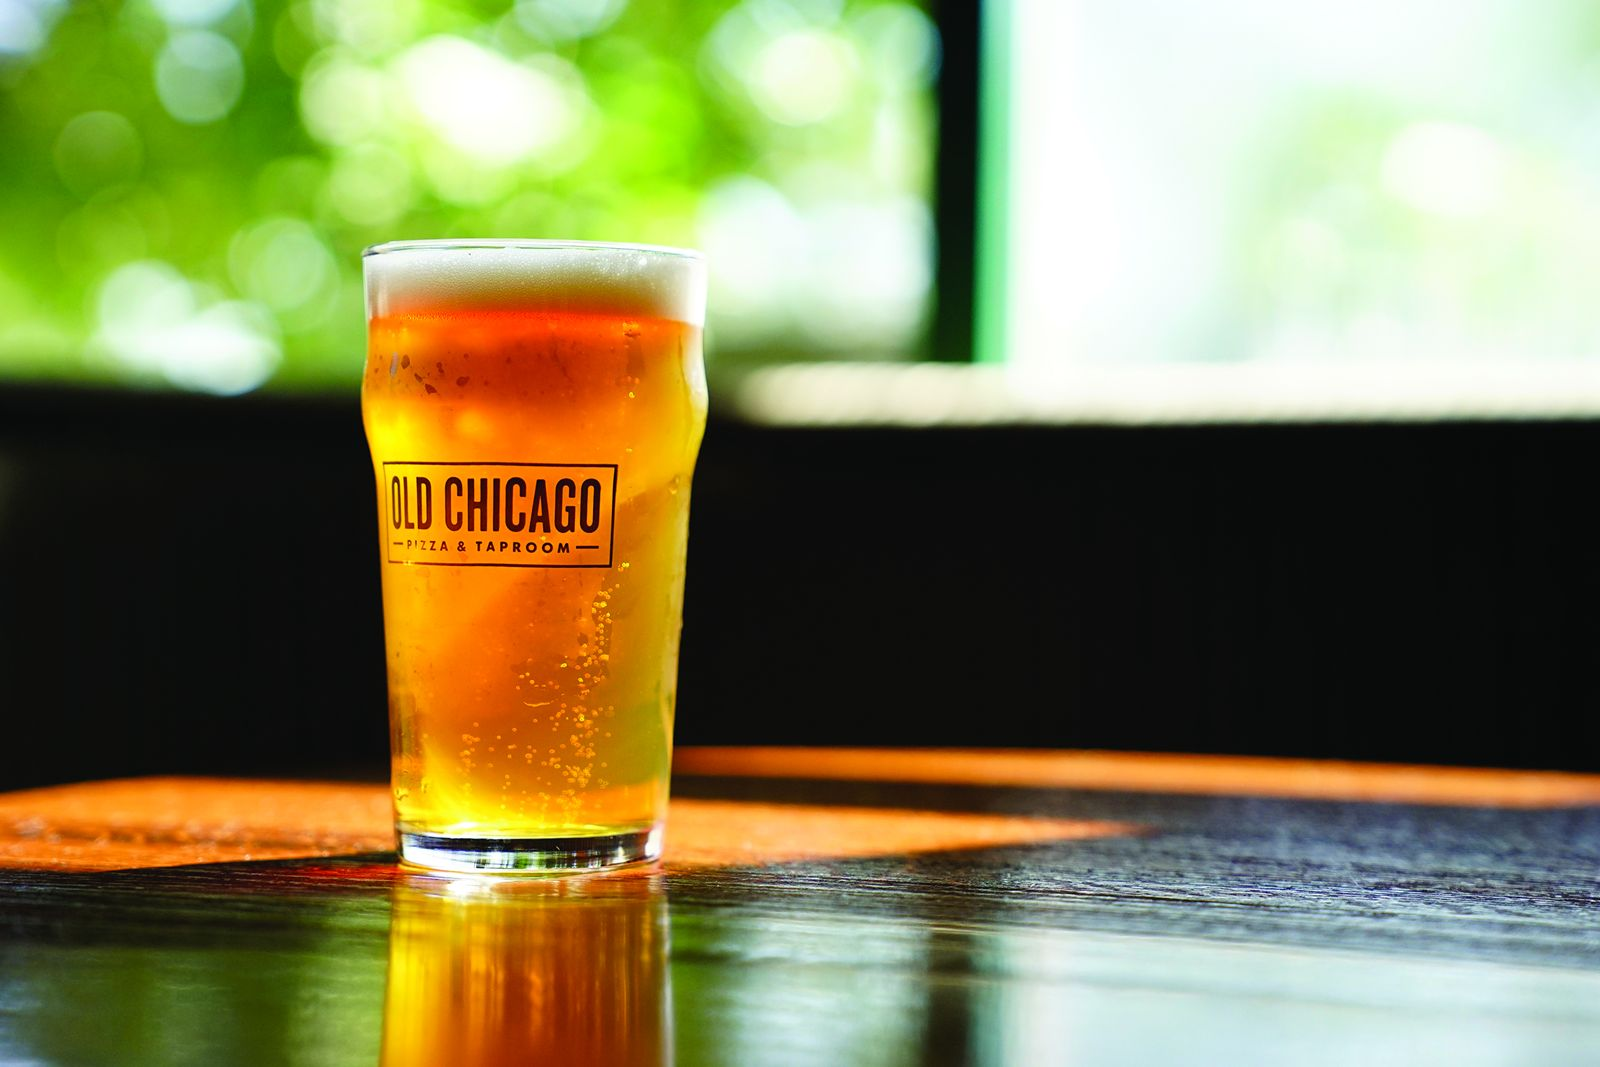 New Franchise Expansion Deals in Iowa for Old Chicago Pizza & Taproom